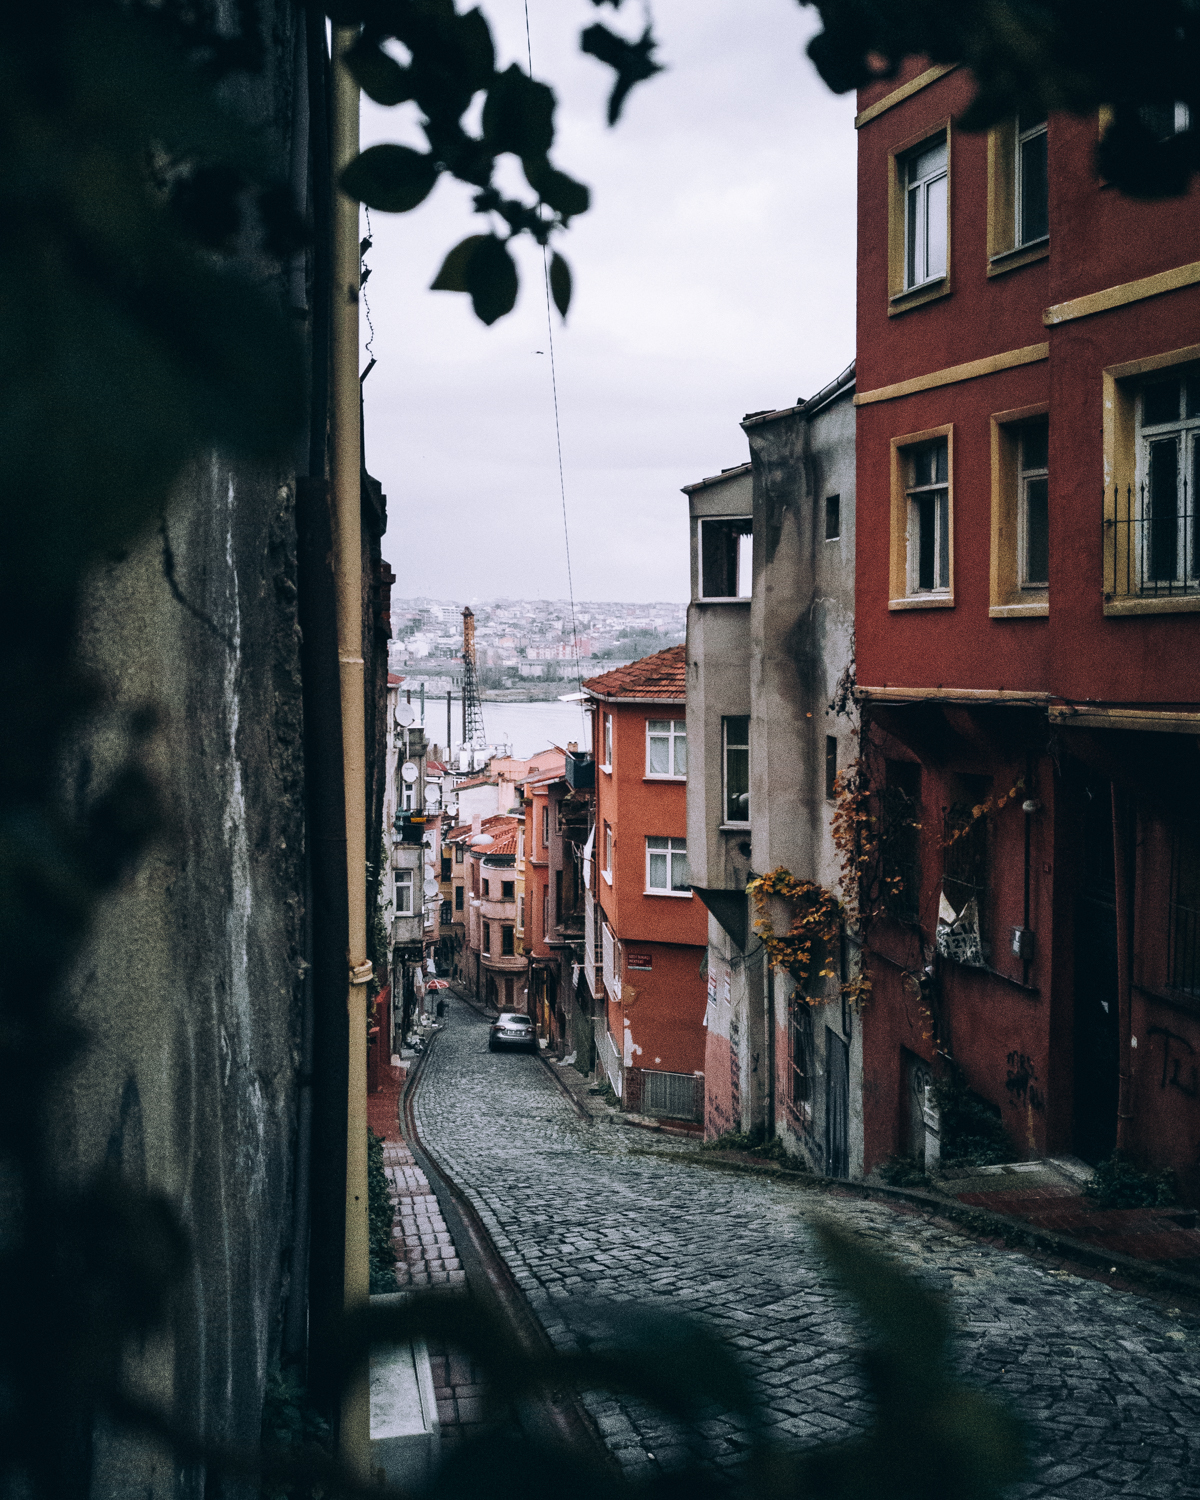 This image I photographed in Istanbul through a plant that was growing conveniently on this wall. By framing it in such a way, this seemingly uninteresting street became a place of interest.